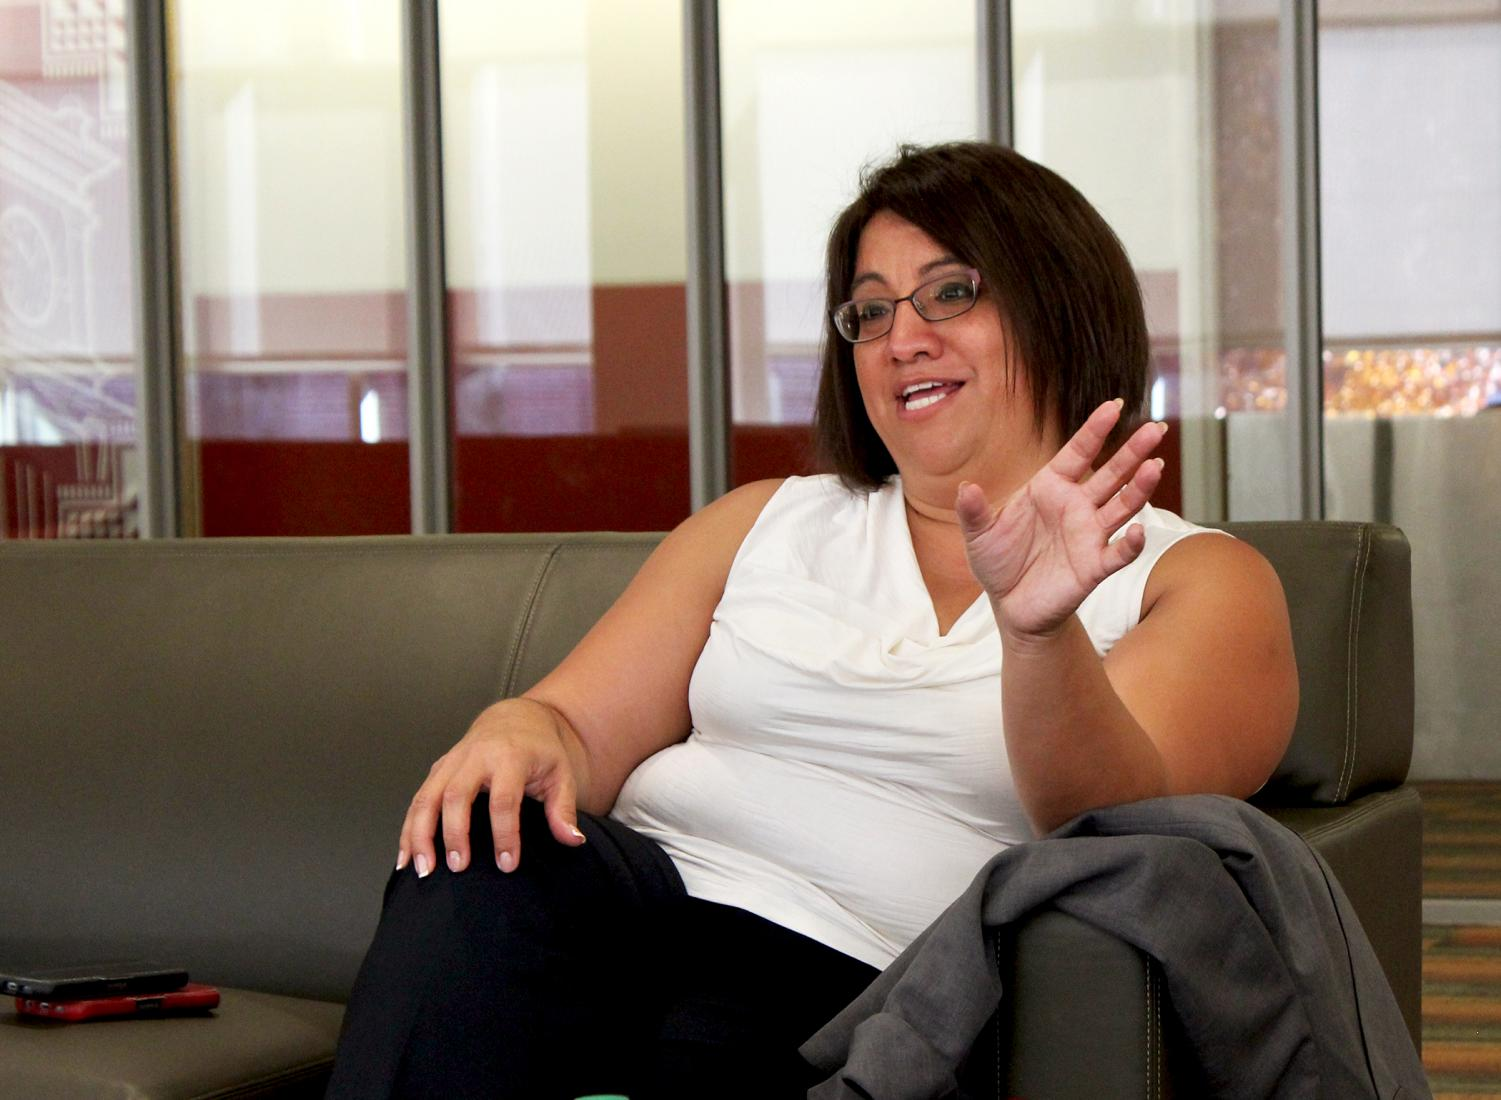 Vice President for Student Affairs Mary Jo Gonzales discusses the impact of recent budget cuts Oct. 26. Last week, Student Affairs found permanent funding for two retention counselors.